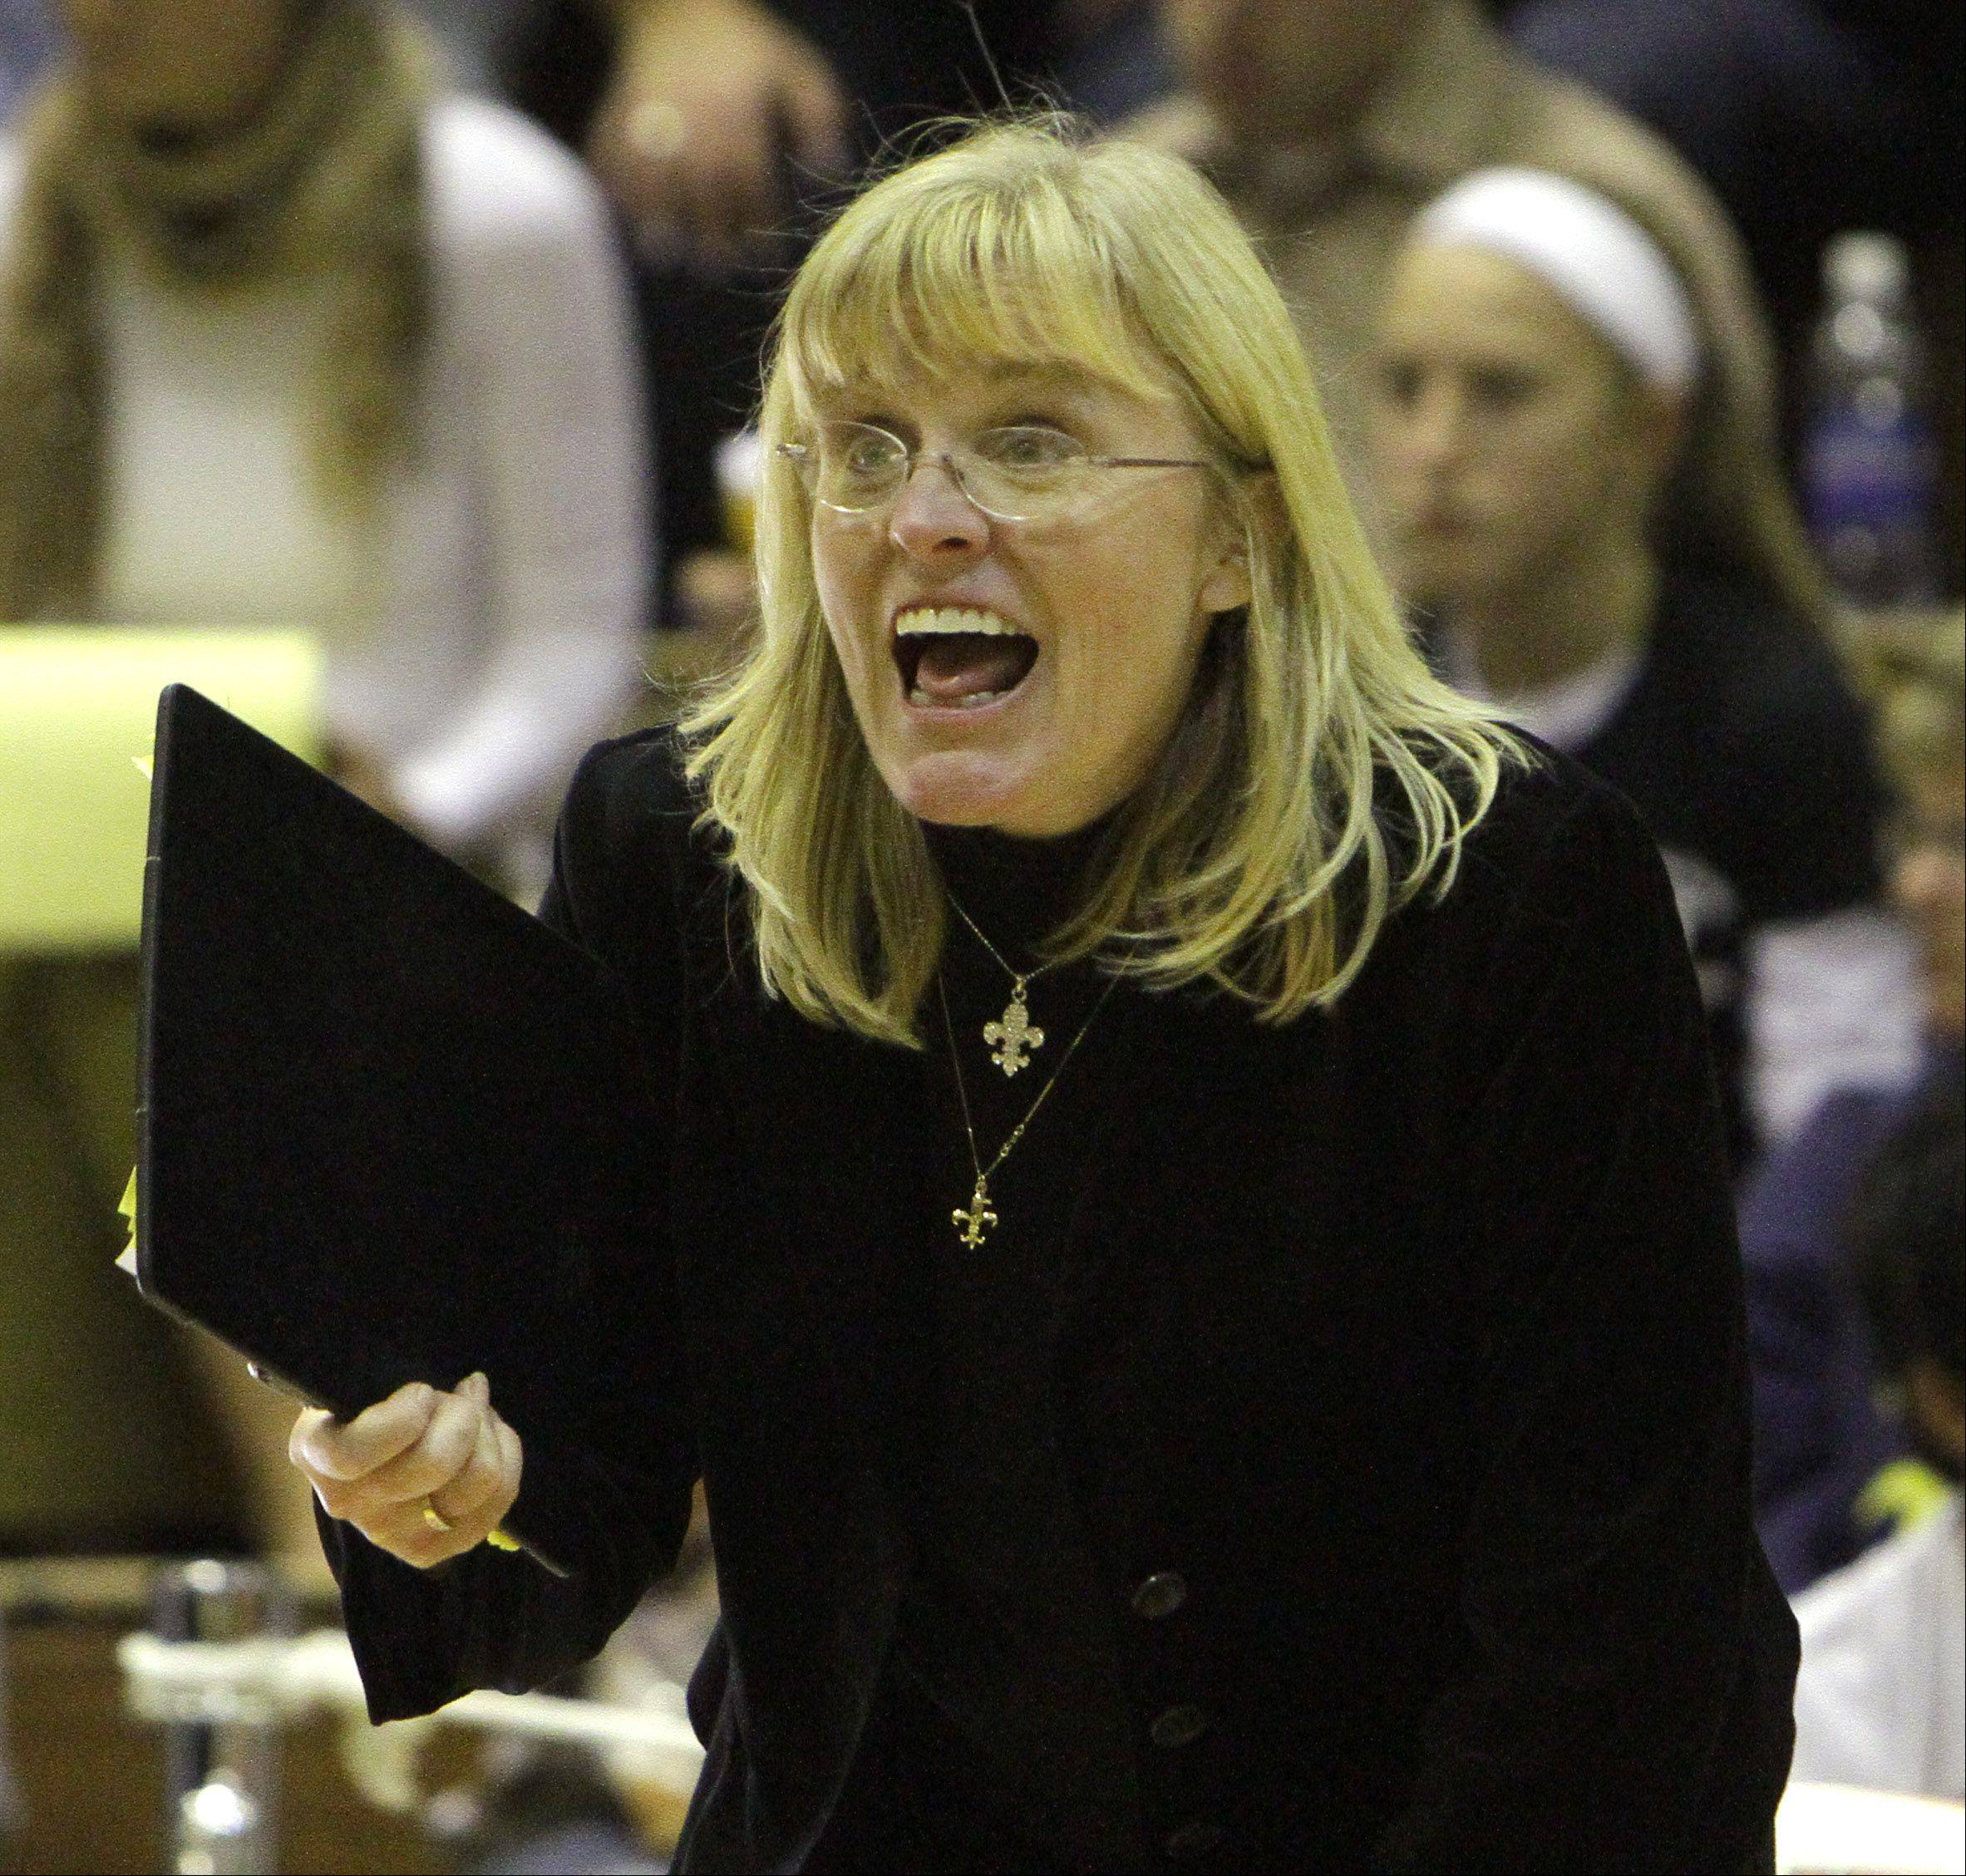 Kevin Sherman/ksherman@dailyherald.com � St. Charles East girls volleyball head coach Jennie Kull shouts to her team during the final moments of their loss to Cary-Grove during their girls volleyball supersectional game in St. Charles on Saturday night.